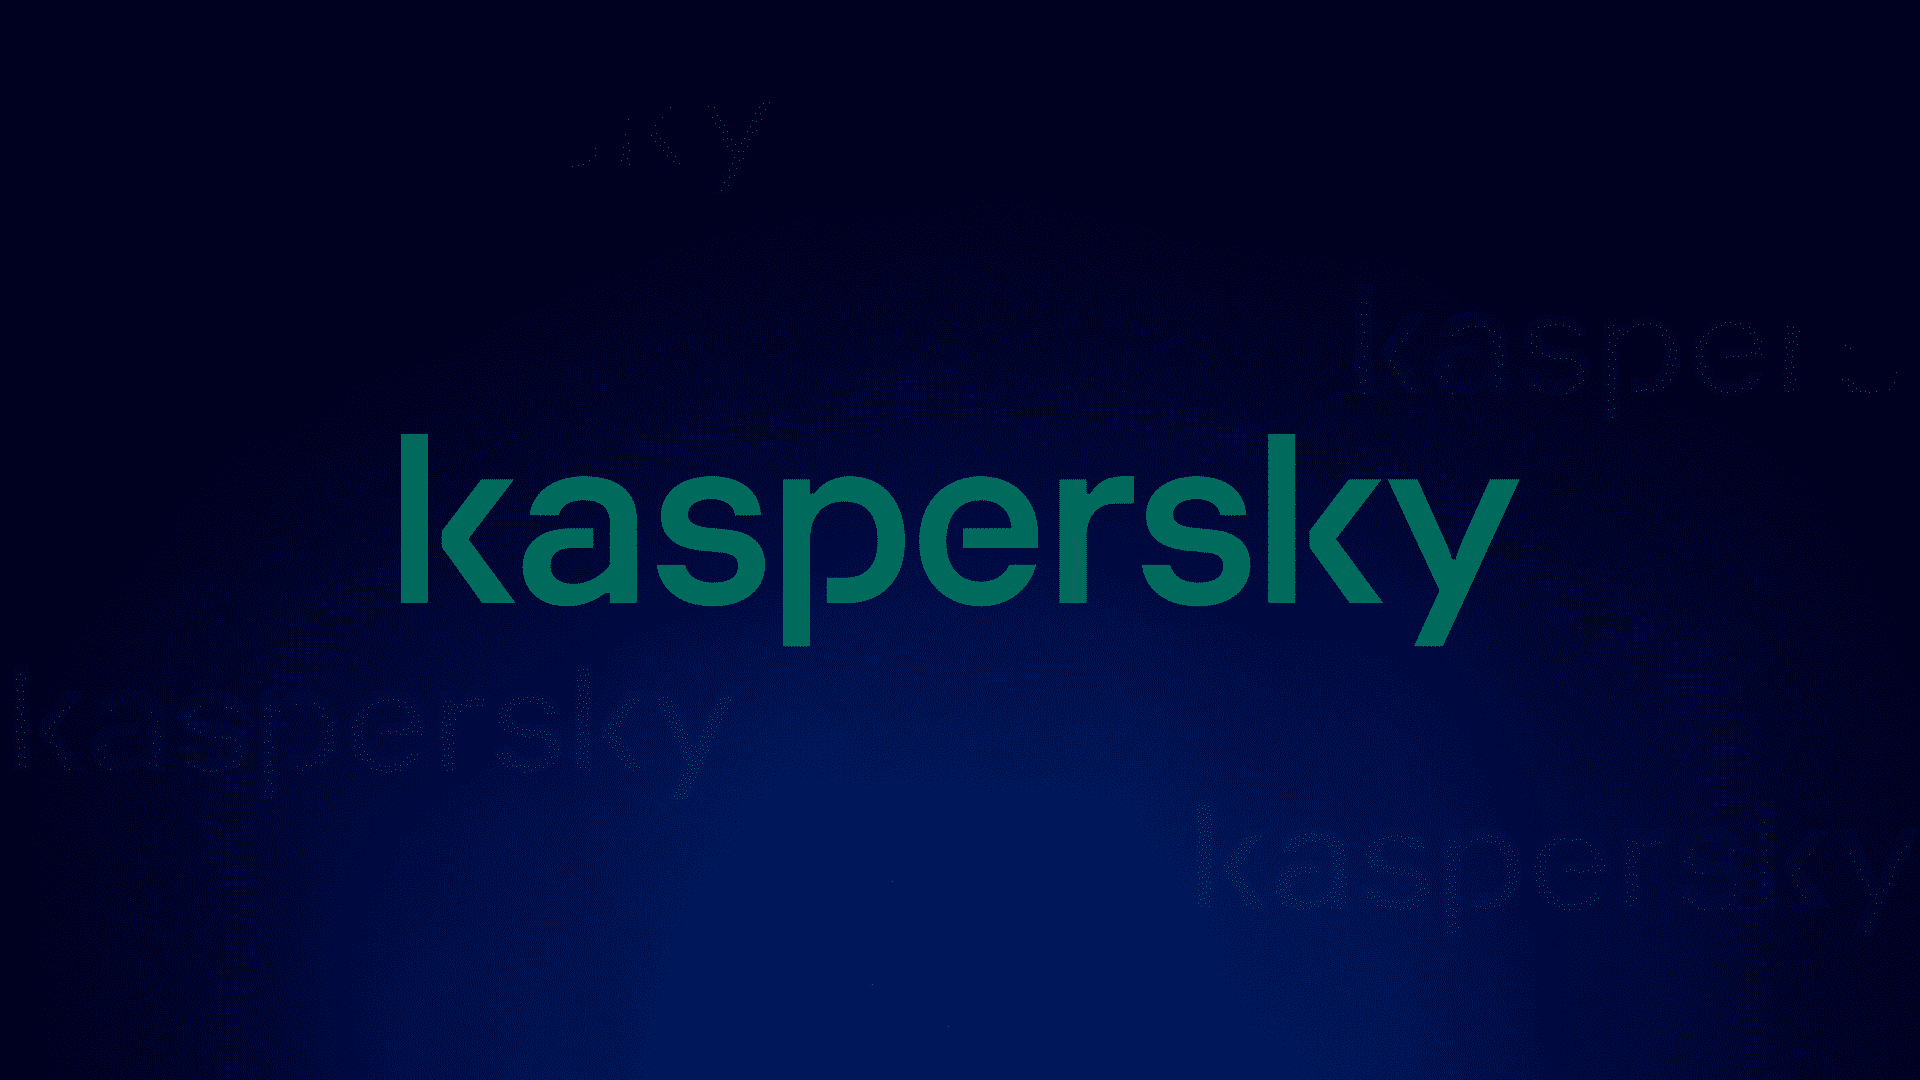 Large Scale Misuse of Push Notification Taking Place for Defrauding Users, Reveals Kaspersky